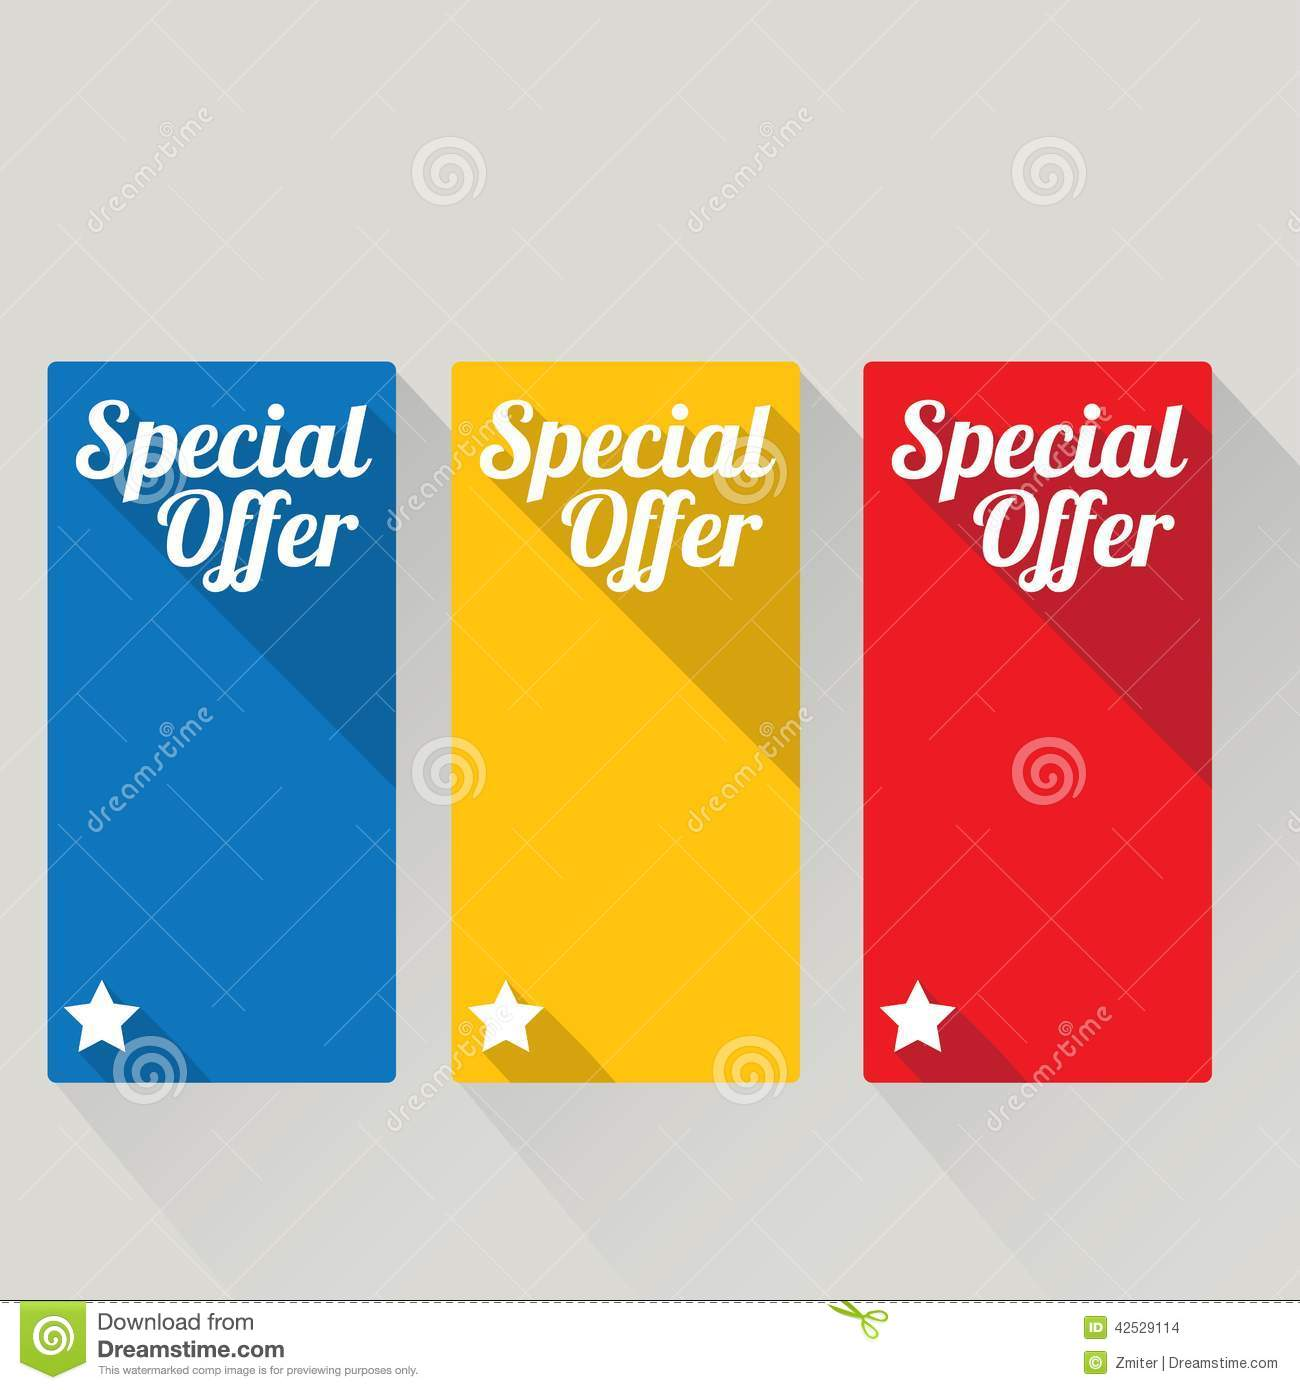 visit plan your special offers